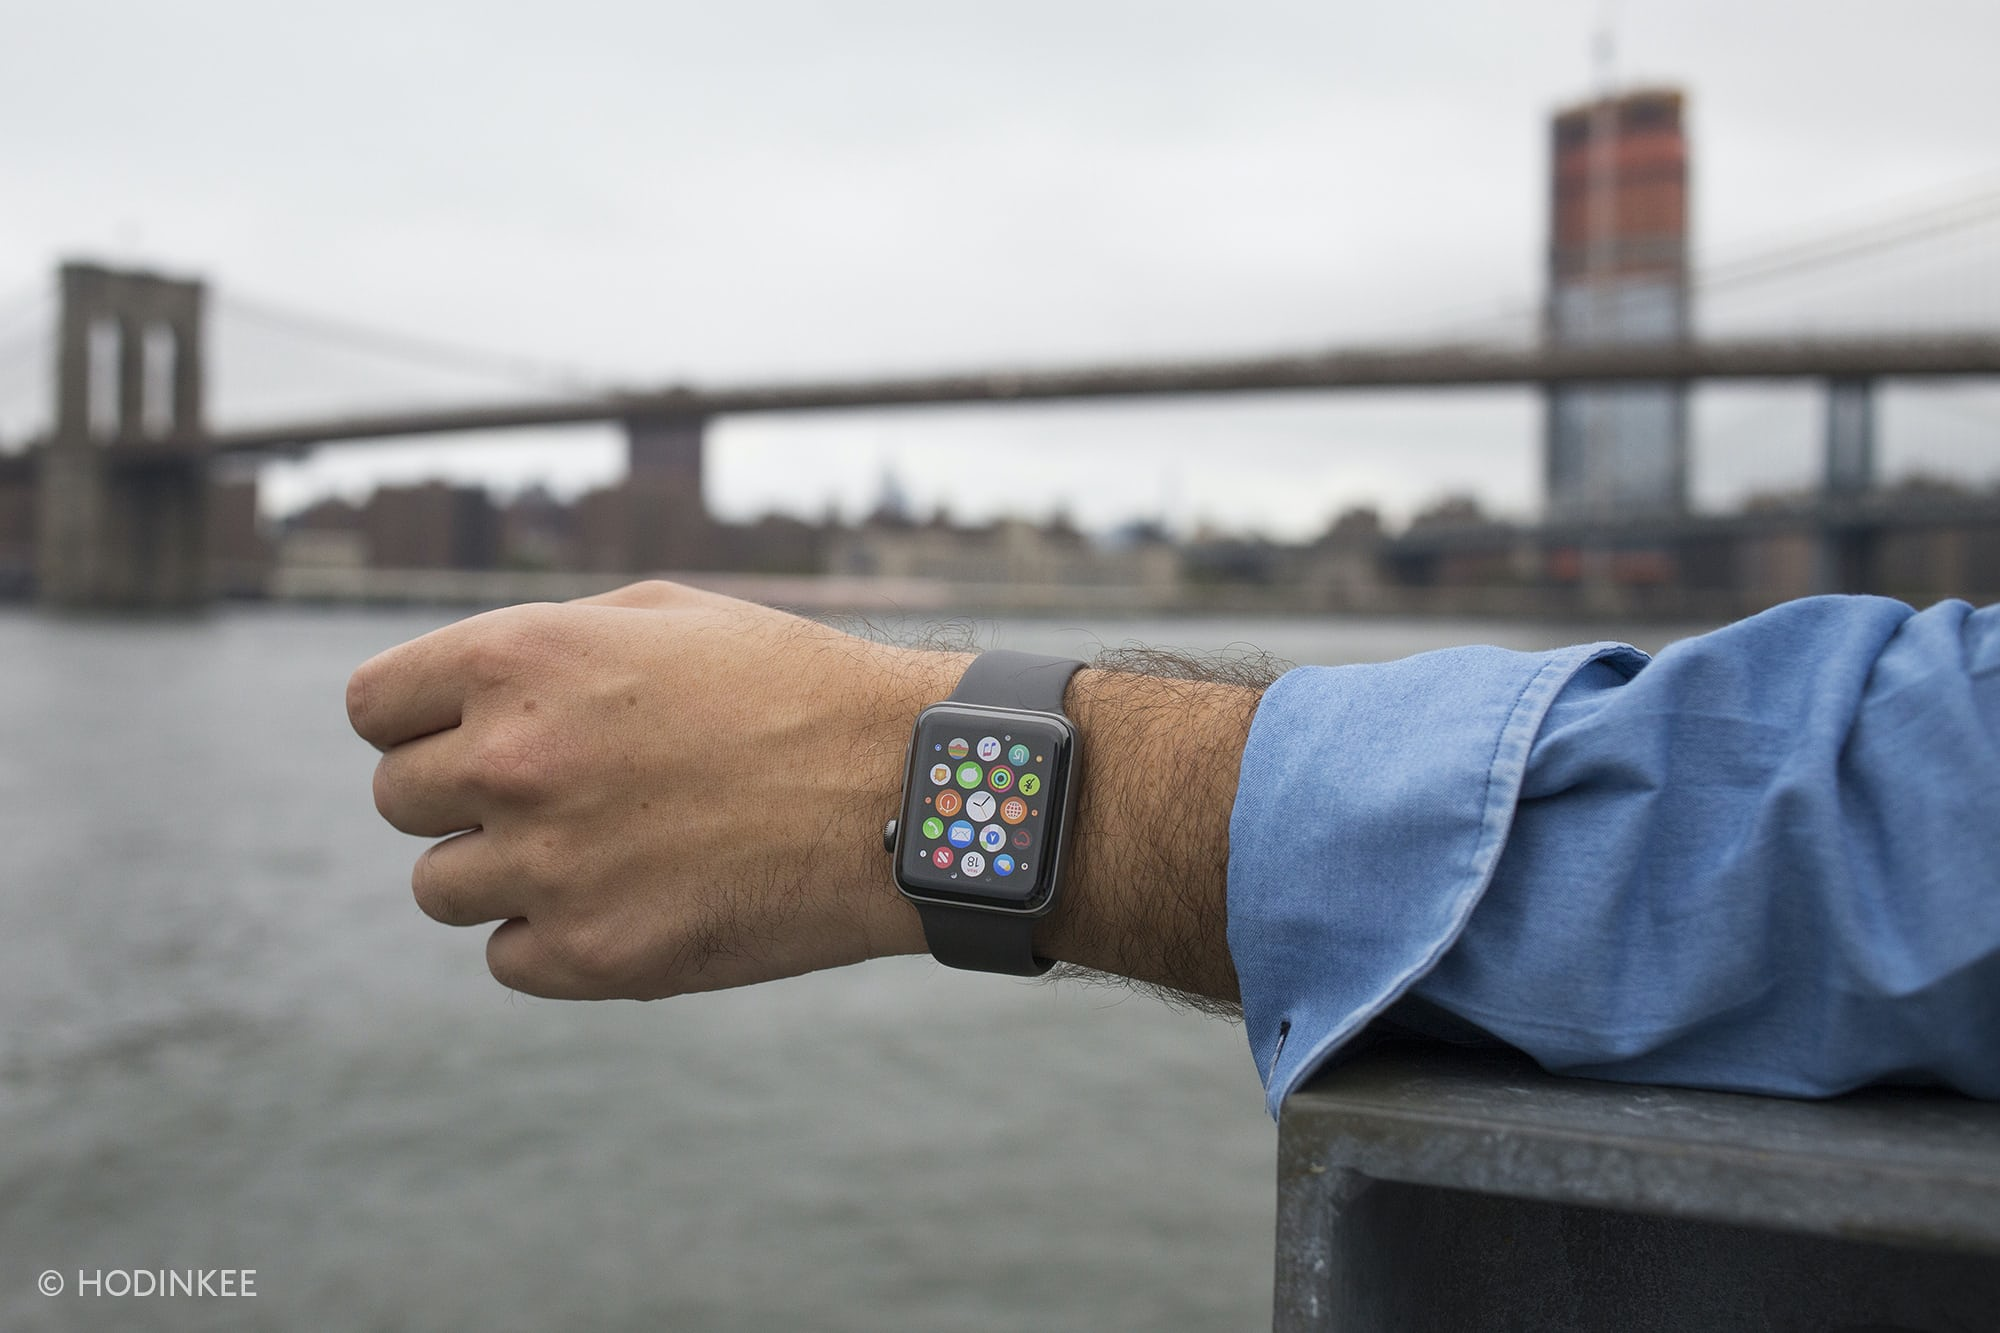 A Week On The Wrist: The Apple Watch Series 3 Edition A Week On The Wrist: The Apple Watch Series 3 Edition 3H0A5160 copy